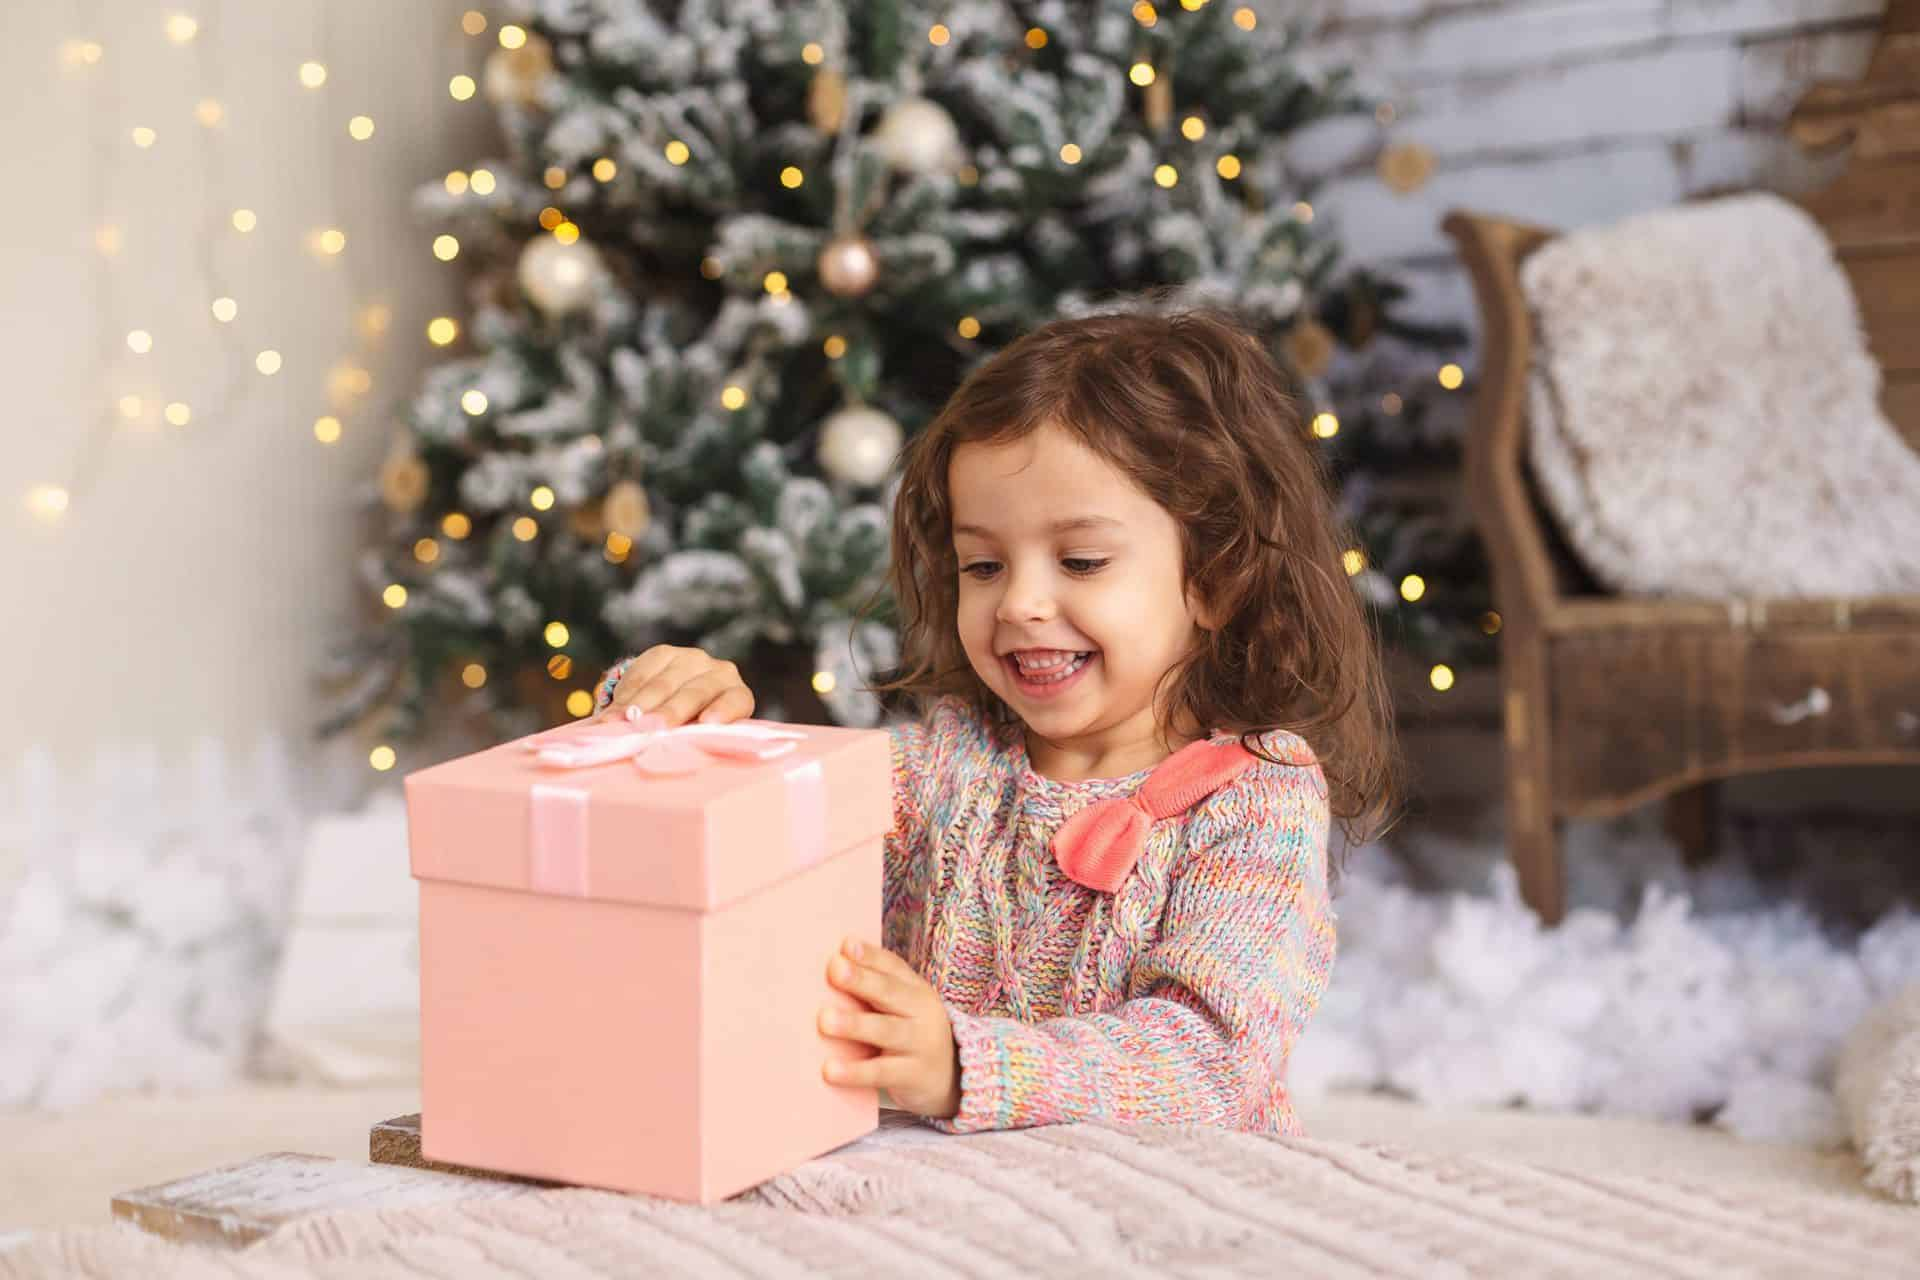 little girl smiling, opening gifts